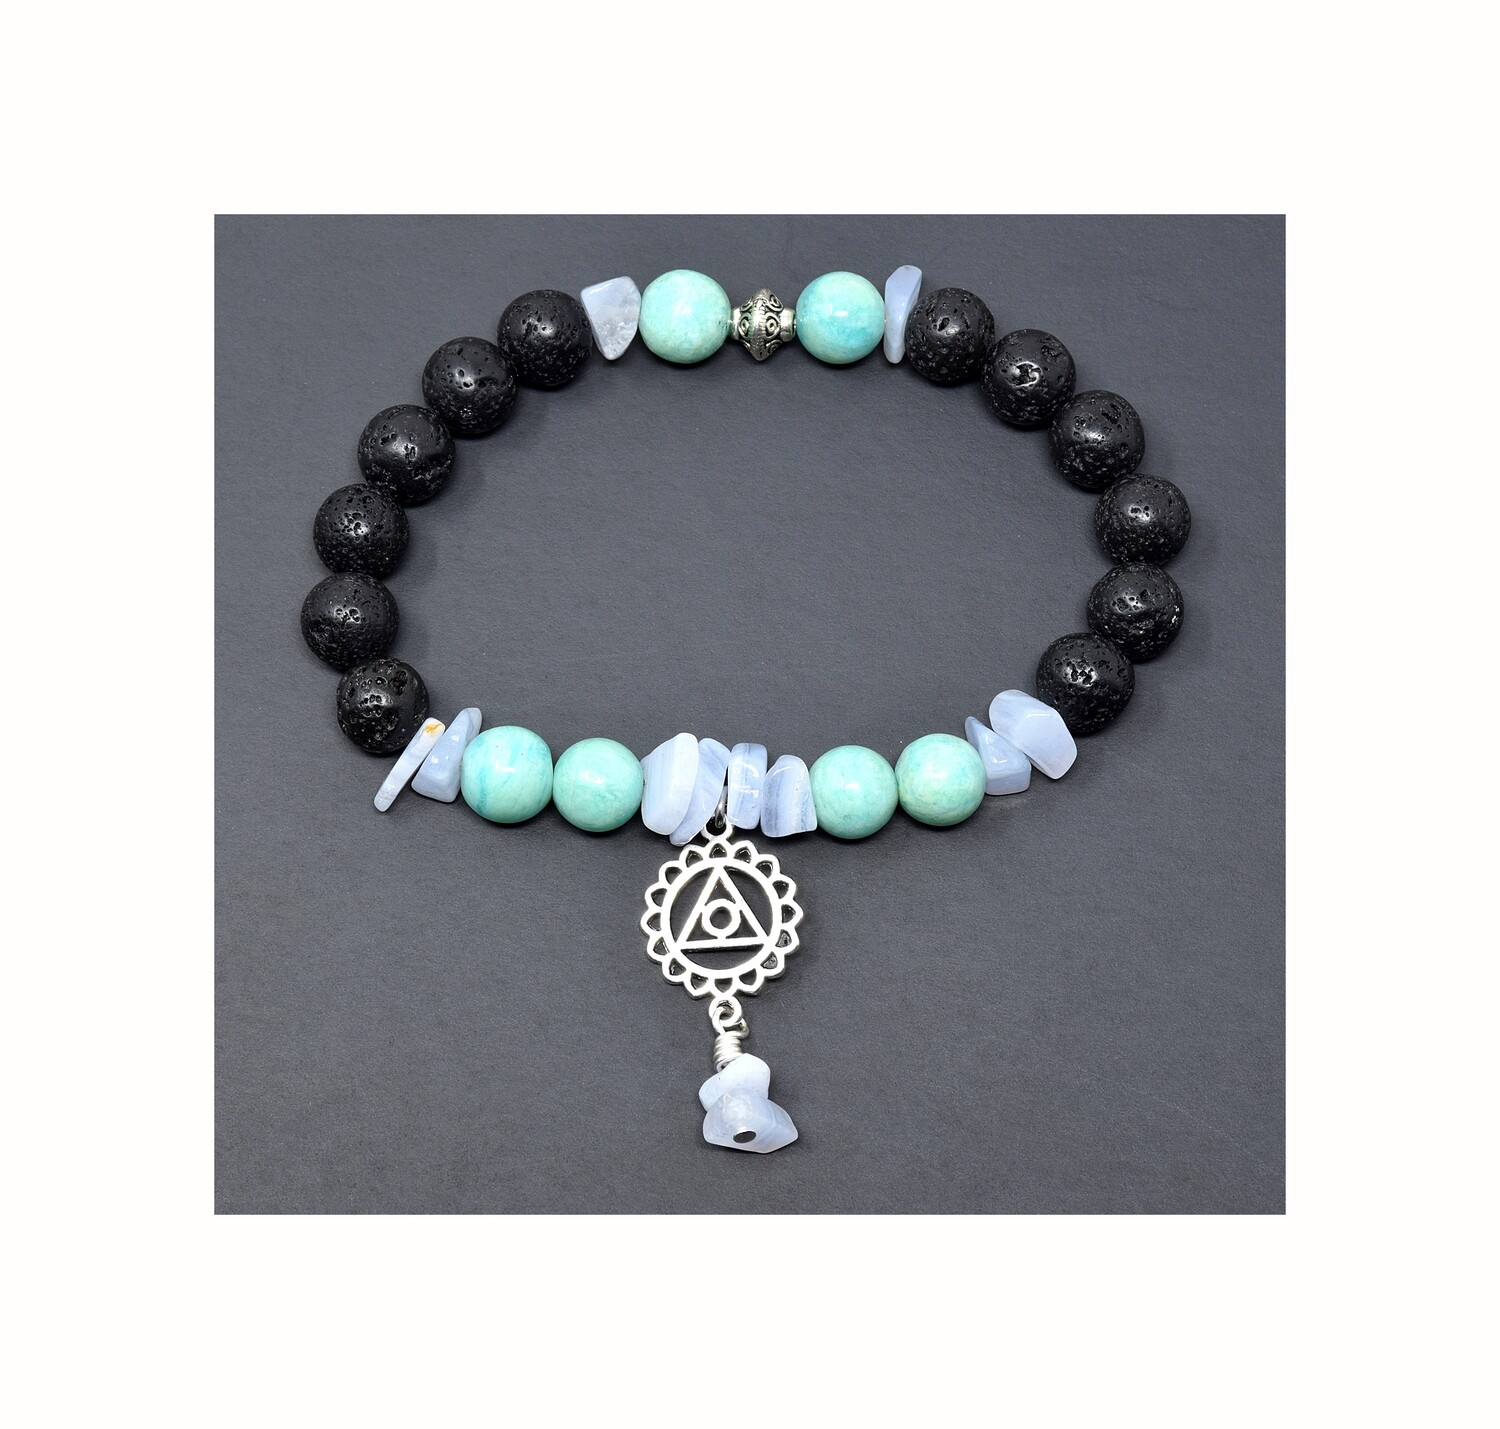 "Reiki Charged Vishudda (Throat Chakra) Charm Gemstone & Lava Stone Bracelet (Fits wrists up to 6.75"")"